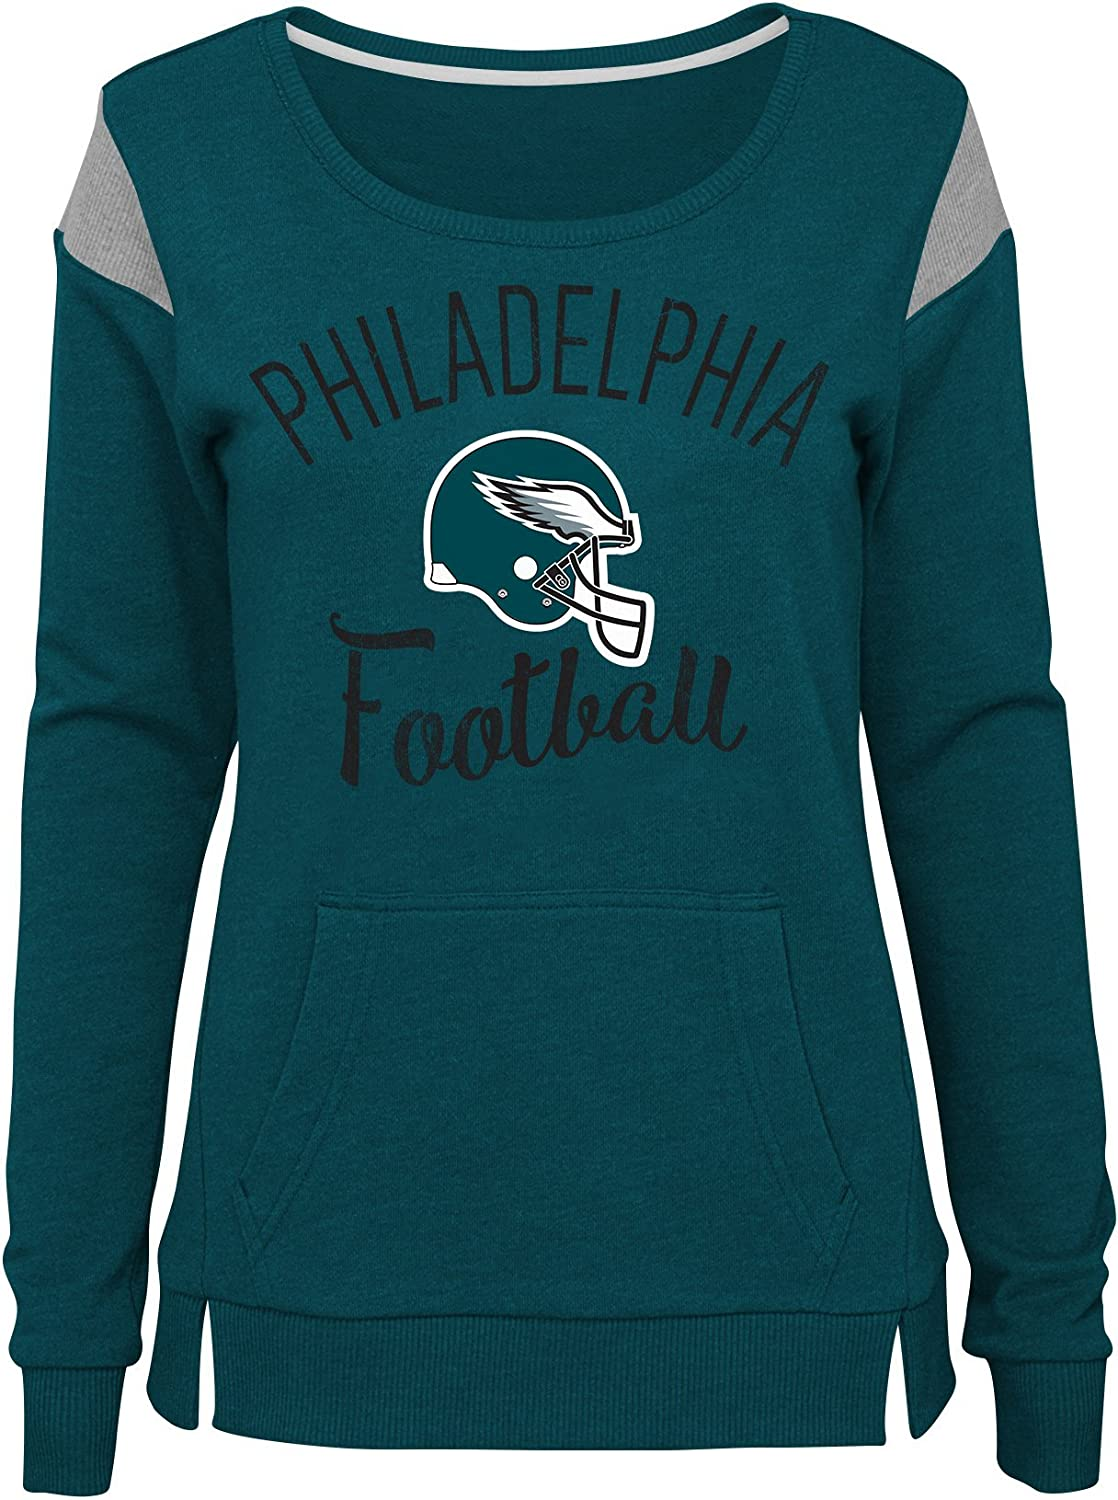 0-1 NFL by Outerstuff NFL Philadelphia Eagles Juniors Classic Crew French Terry Pullover Jade Juniors X-Small